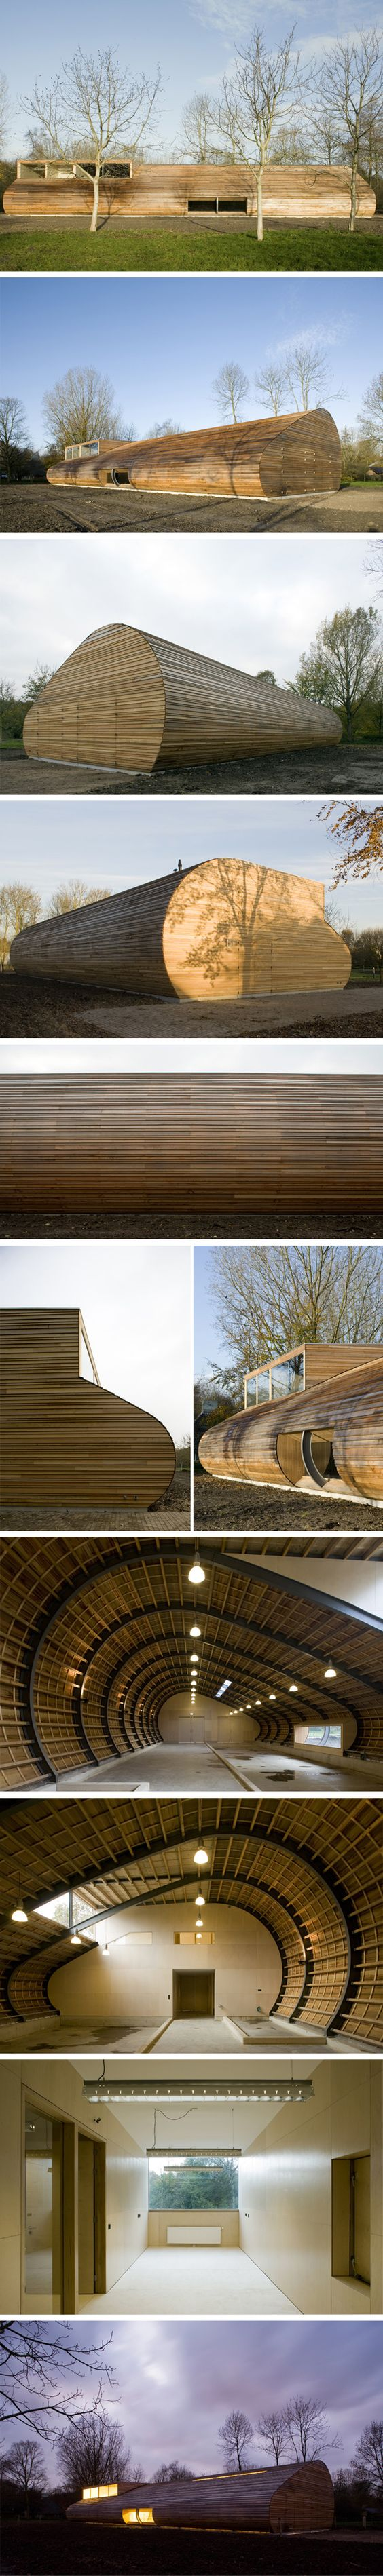 Sheep-Stable-70F-#architecture-2 #wood